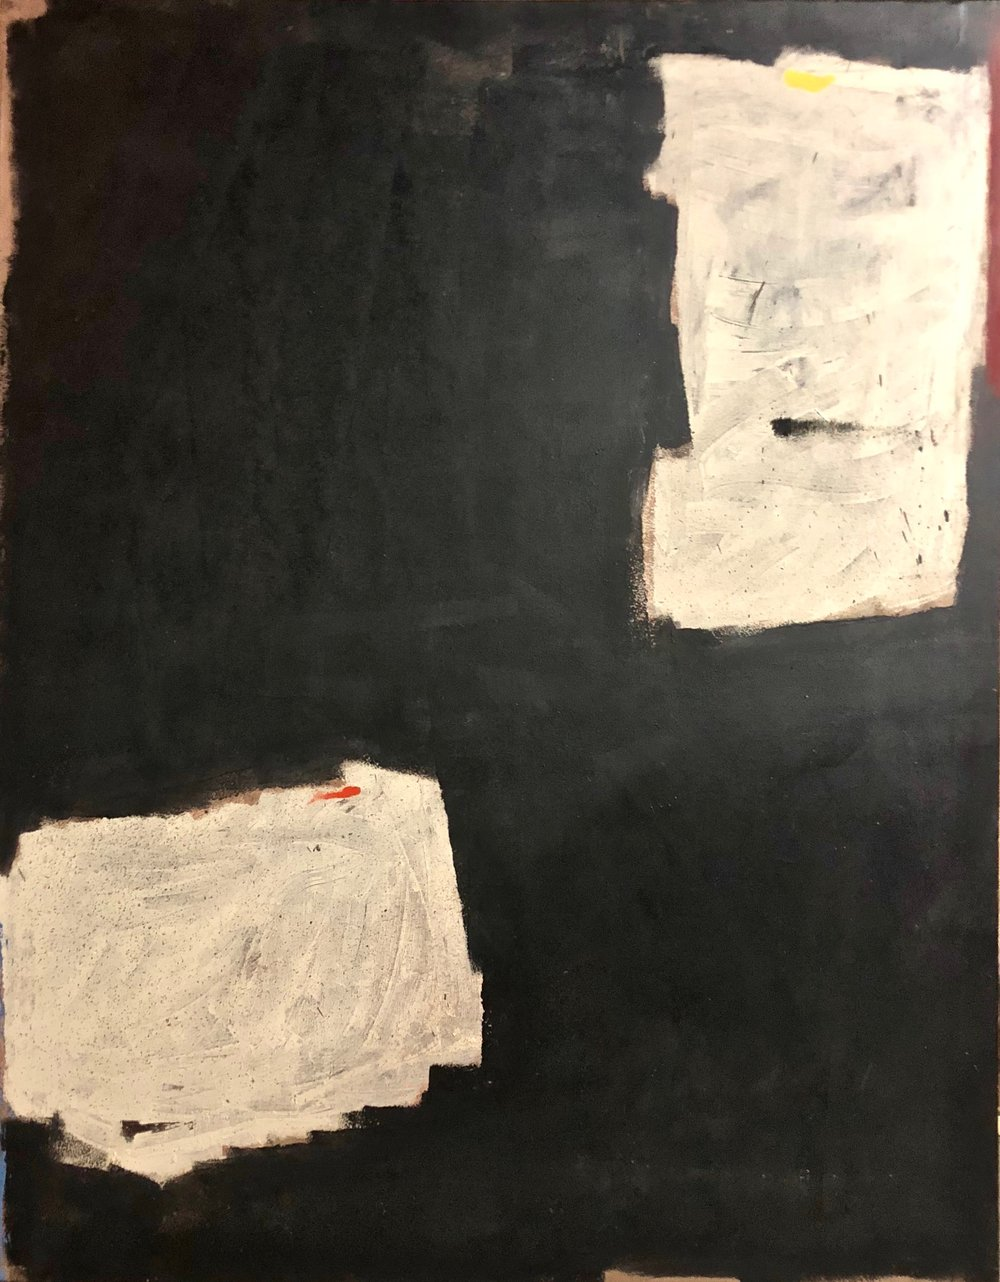 Archiac #70 , 1984 Oil on canvas 76 x 59 1/4 inches